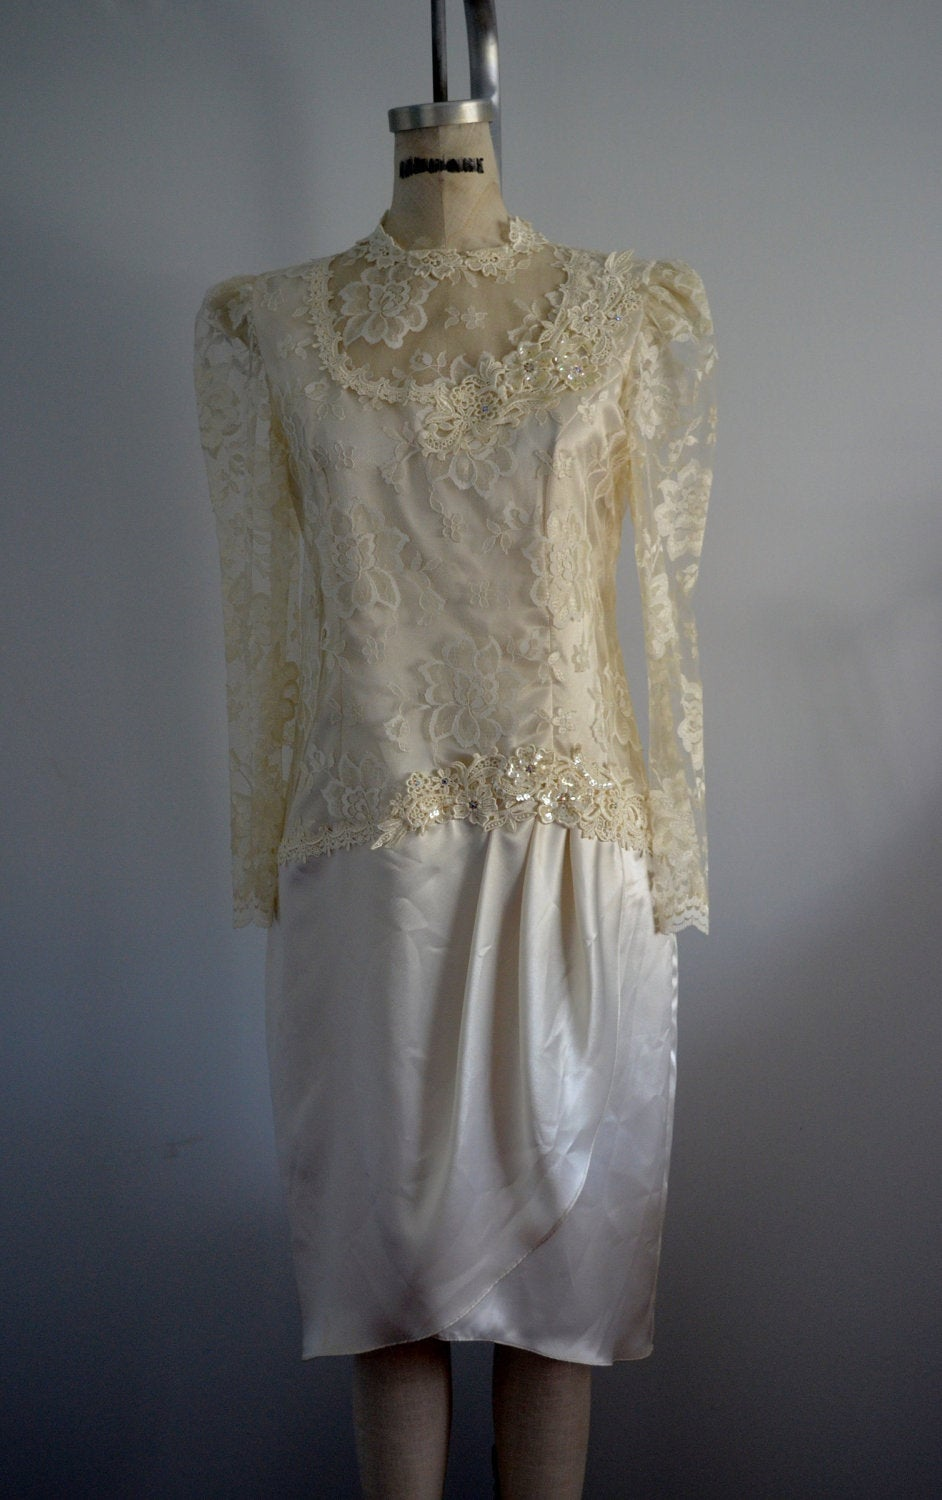 Patra Sheer Venise Lace Wedding Dress In Ivory Size 8